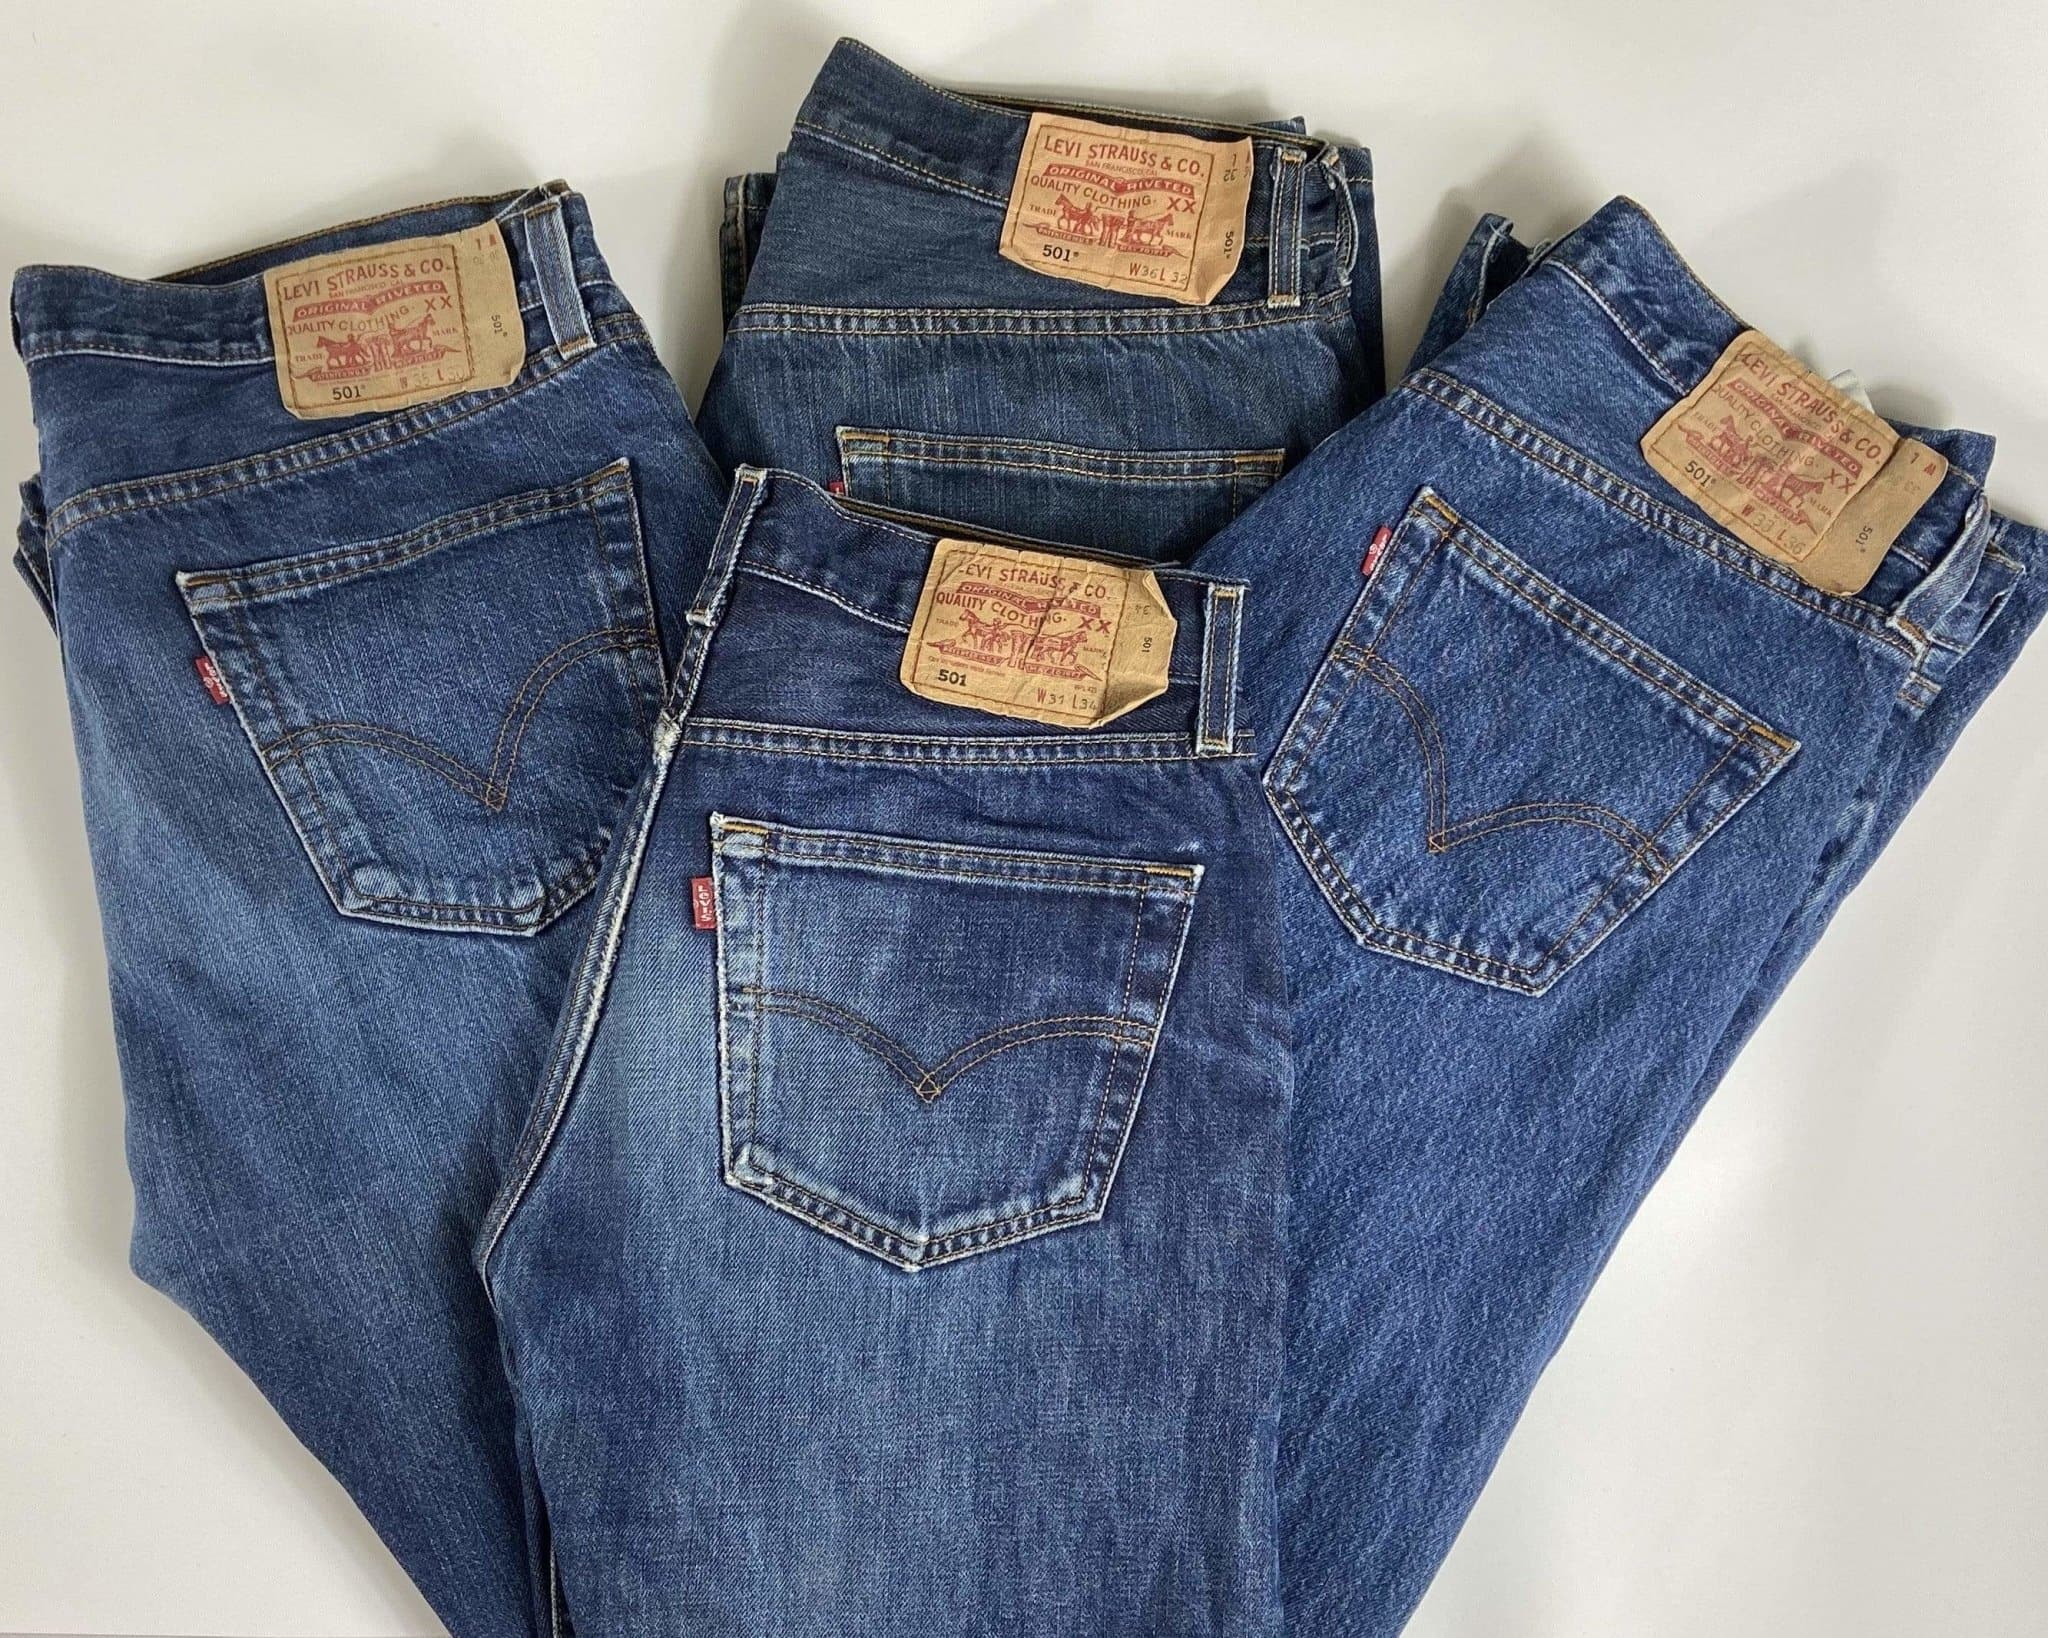 Vintage Levi's Classic 501 Jeans W36 L36 (DHLB4) - Discounted Deals UK